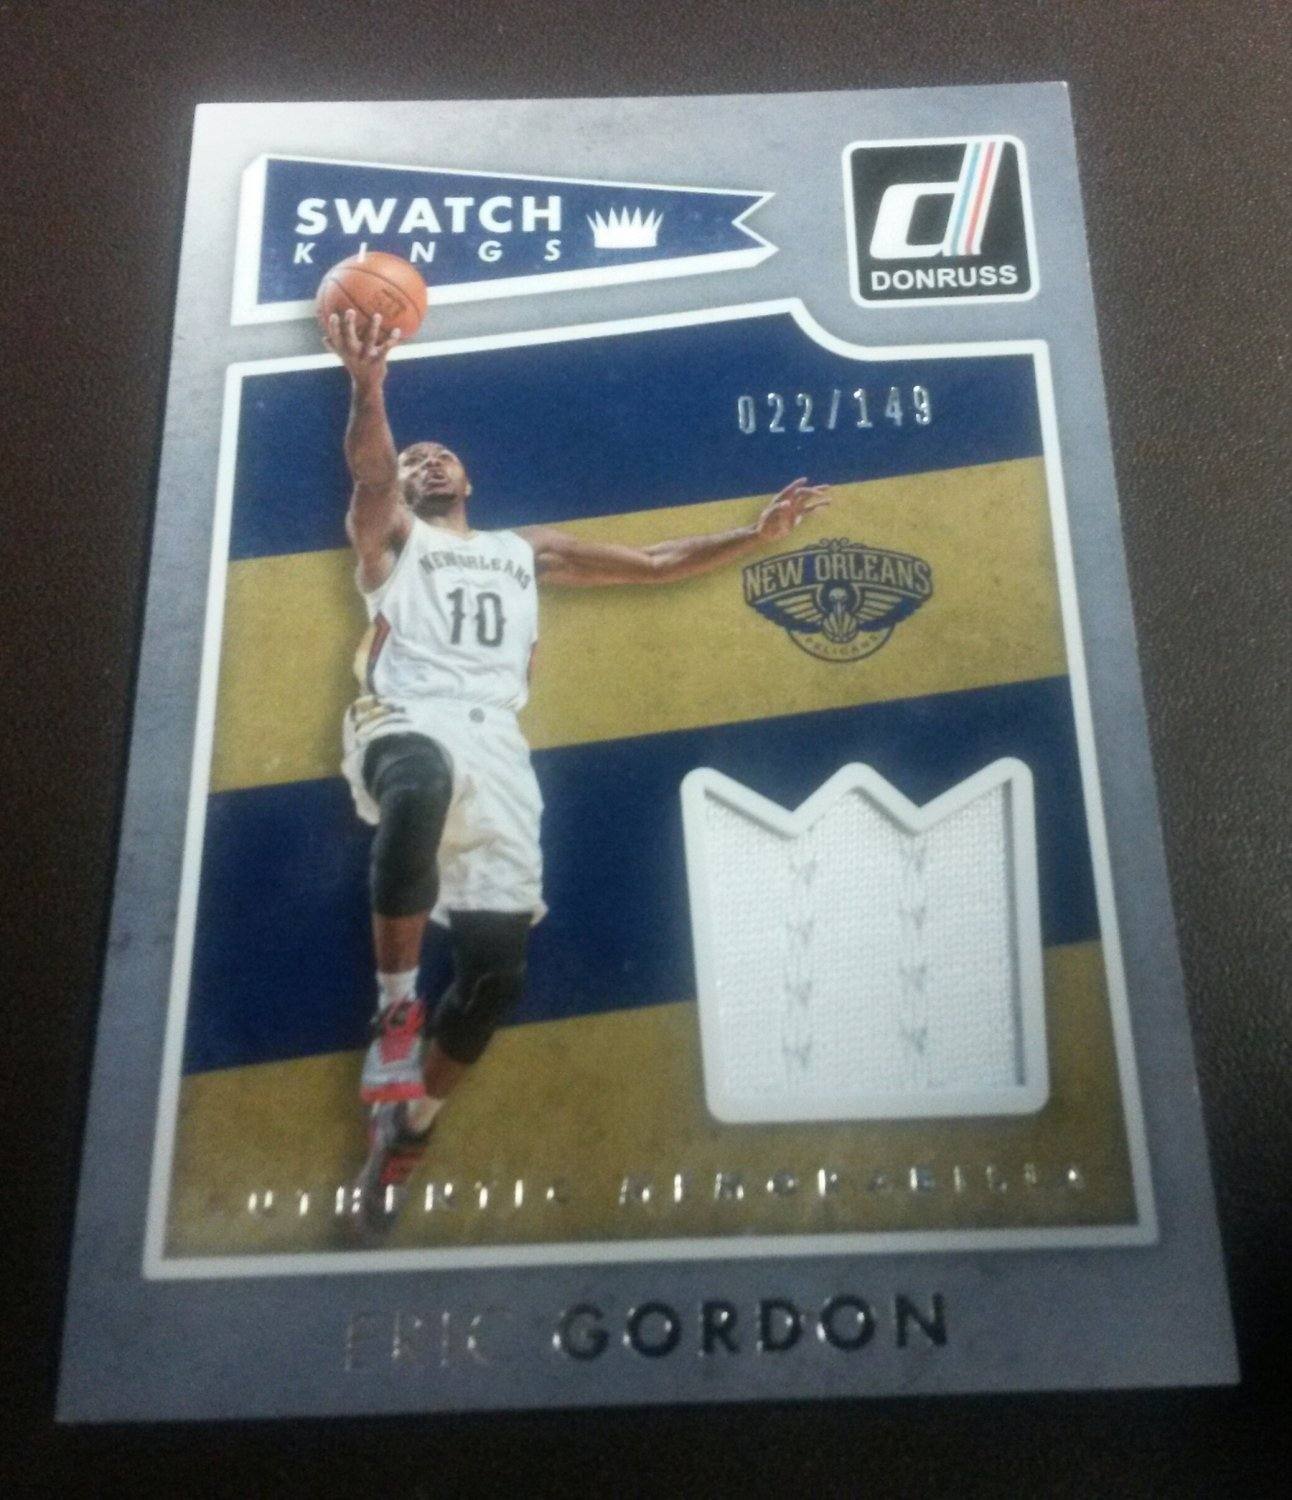 2015-16 Donruss Panini Swatch Kings Eric Gordon New Orleans Pelicans Jersey Card